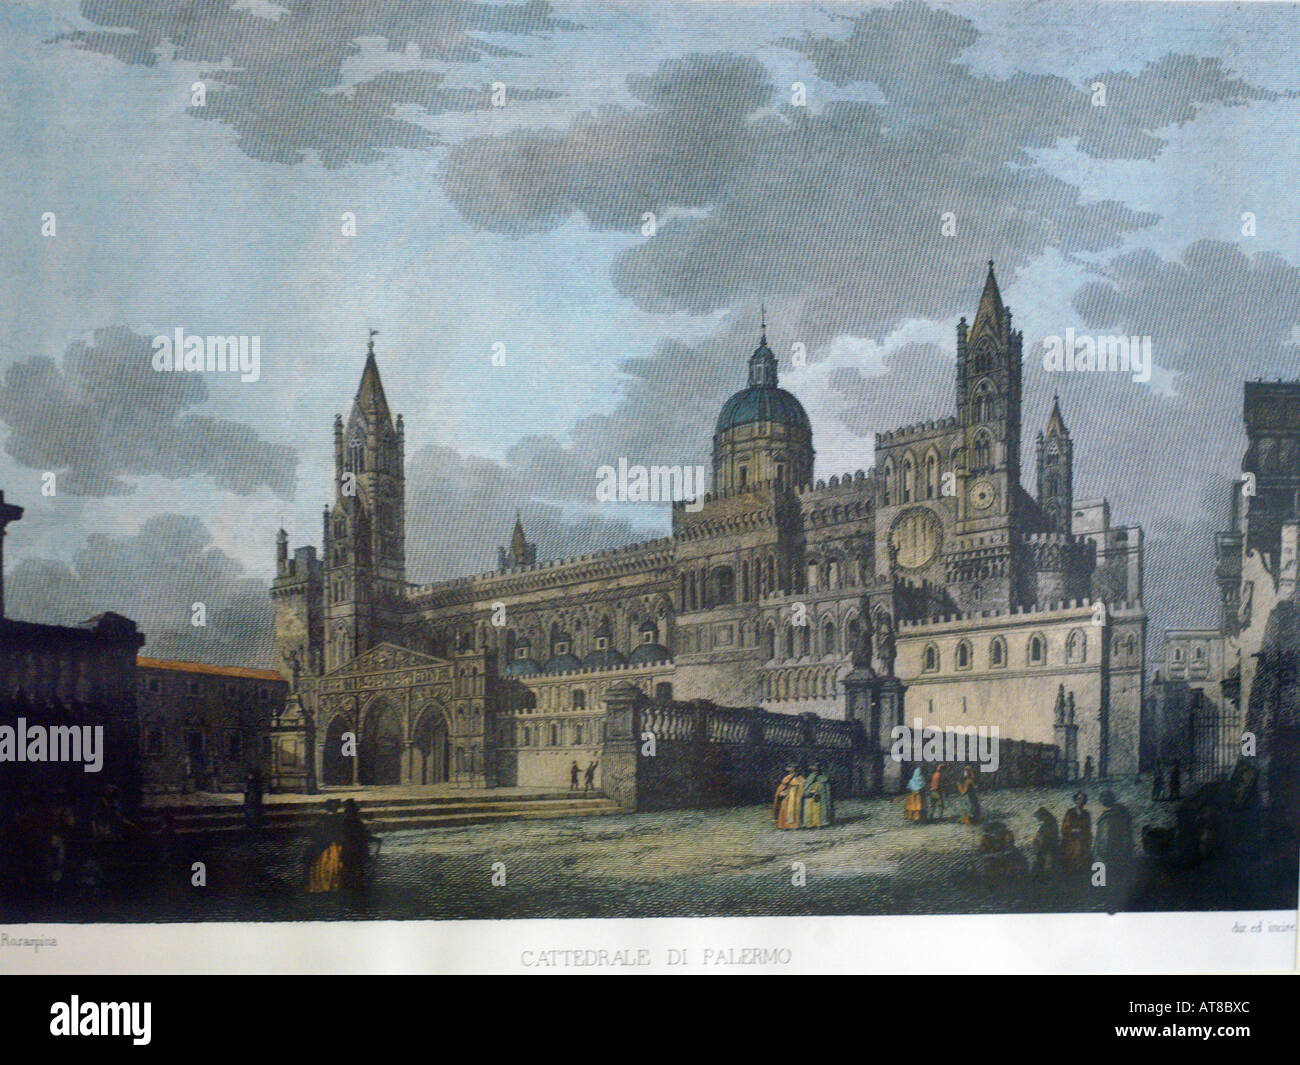 Palermo Sicily Italy Old Print of the Cathedral of Palermo c1800 - Stock Image